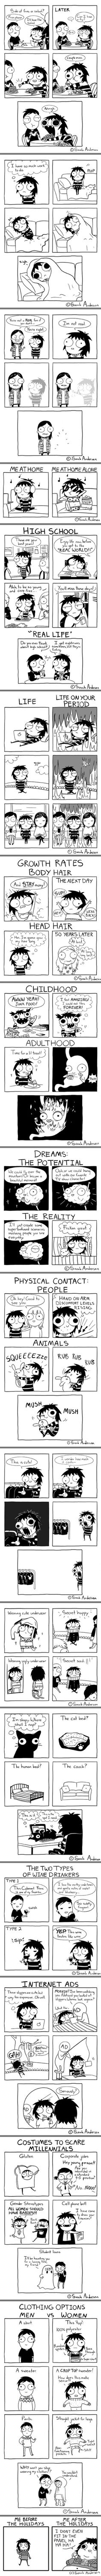 New Sarah Andersen is the best Sarah Andersen